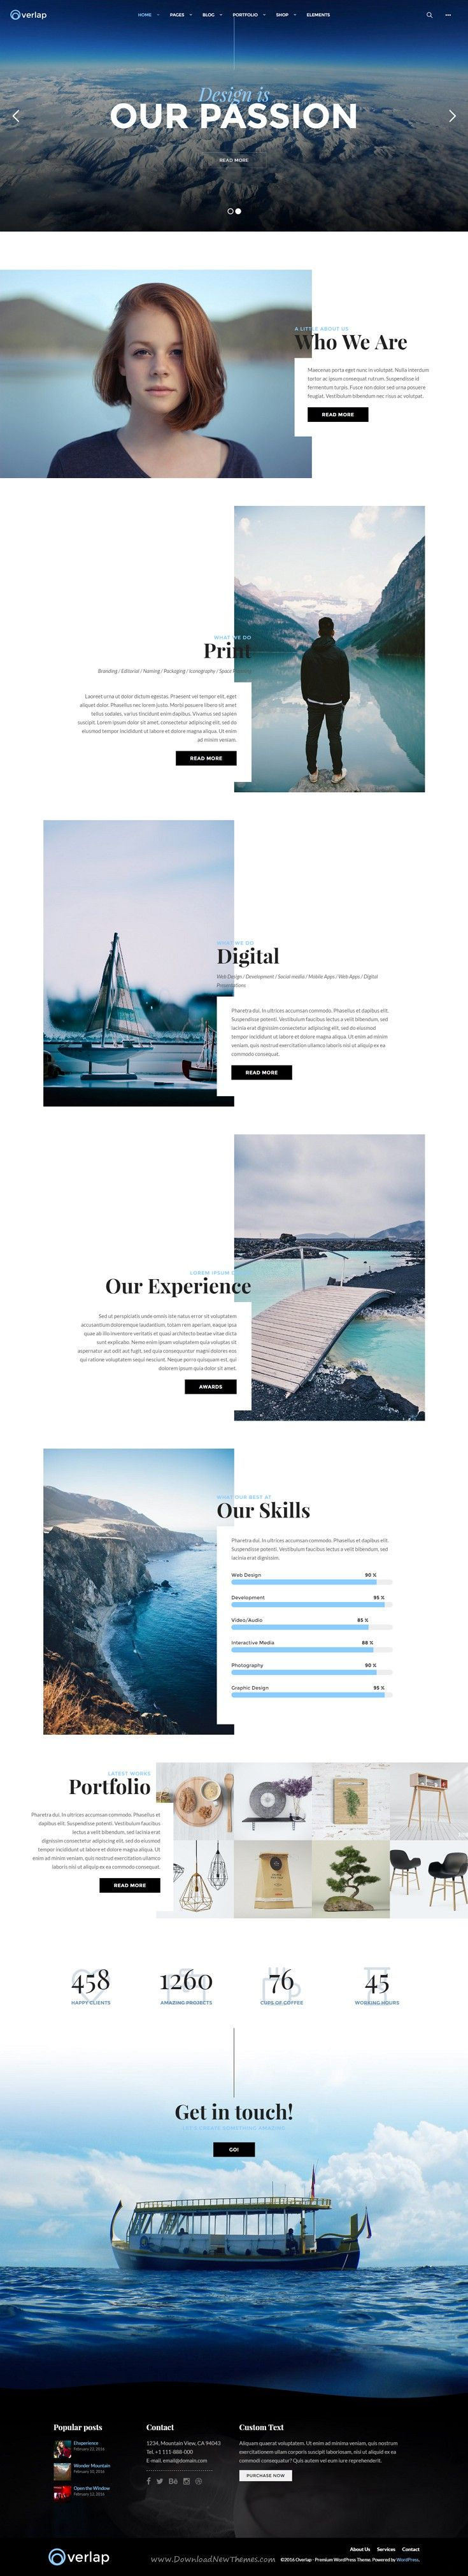 Overlap - High Performance WordPress Theme